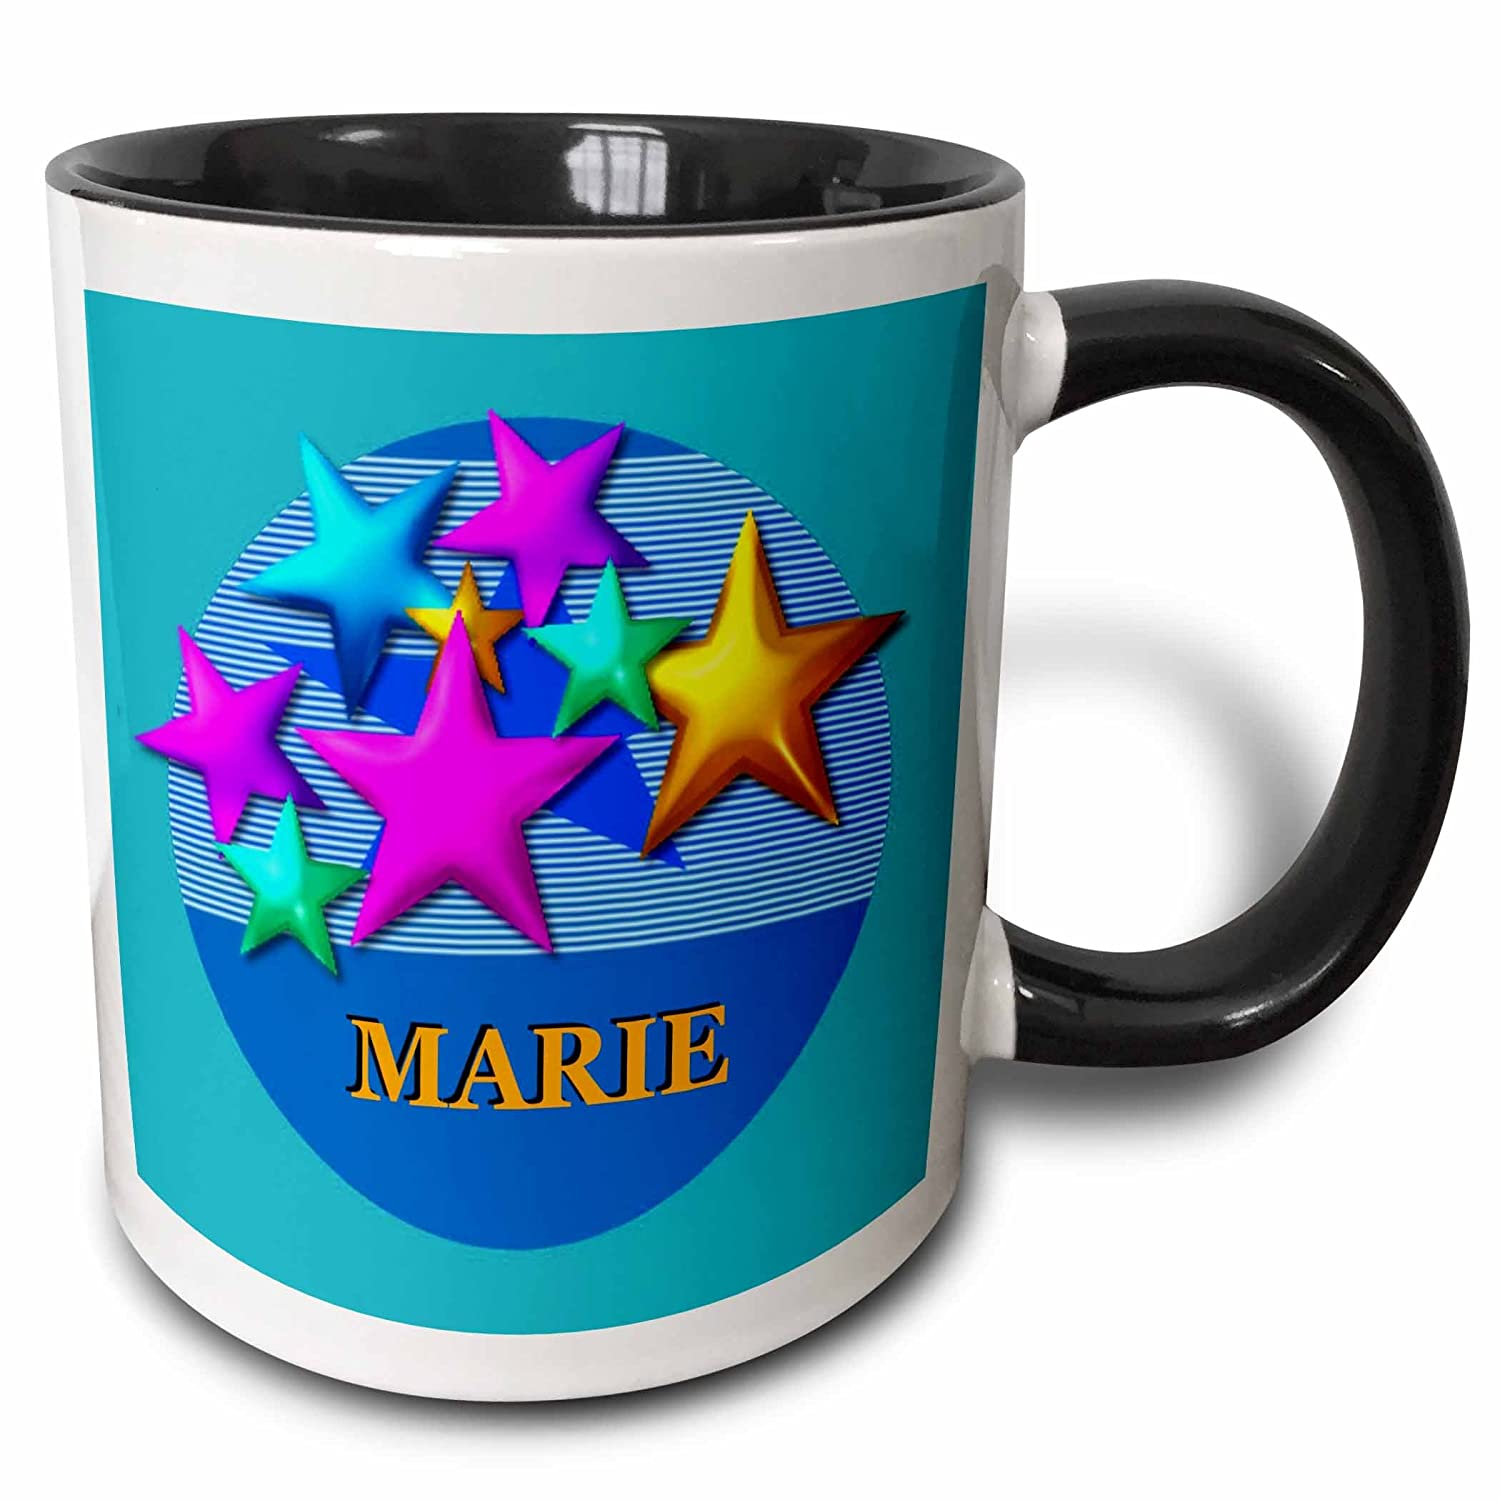 11 oz Multicolor 3dRose mug/_52946/_4Vibrant colored stars on a blue background personalized with the name MARIE Two Tone Black Mug